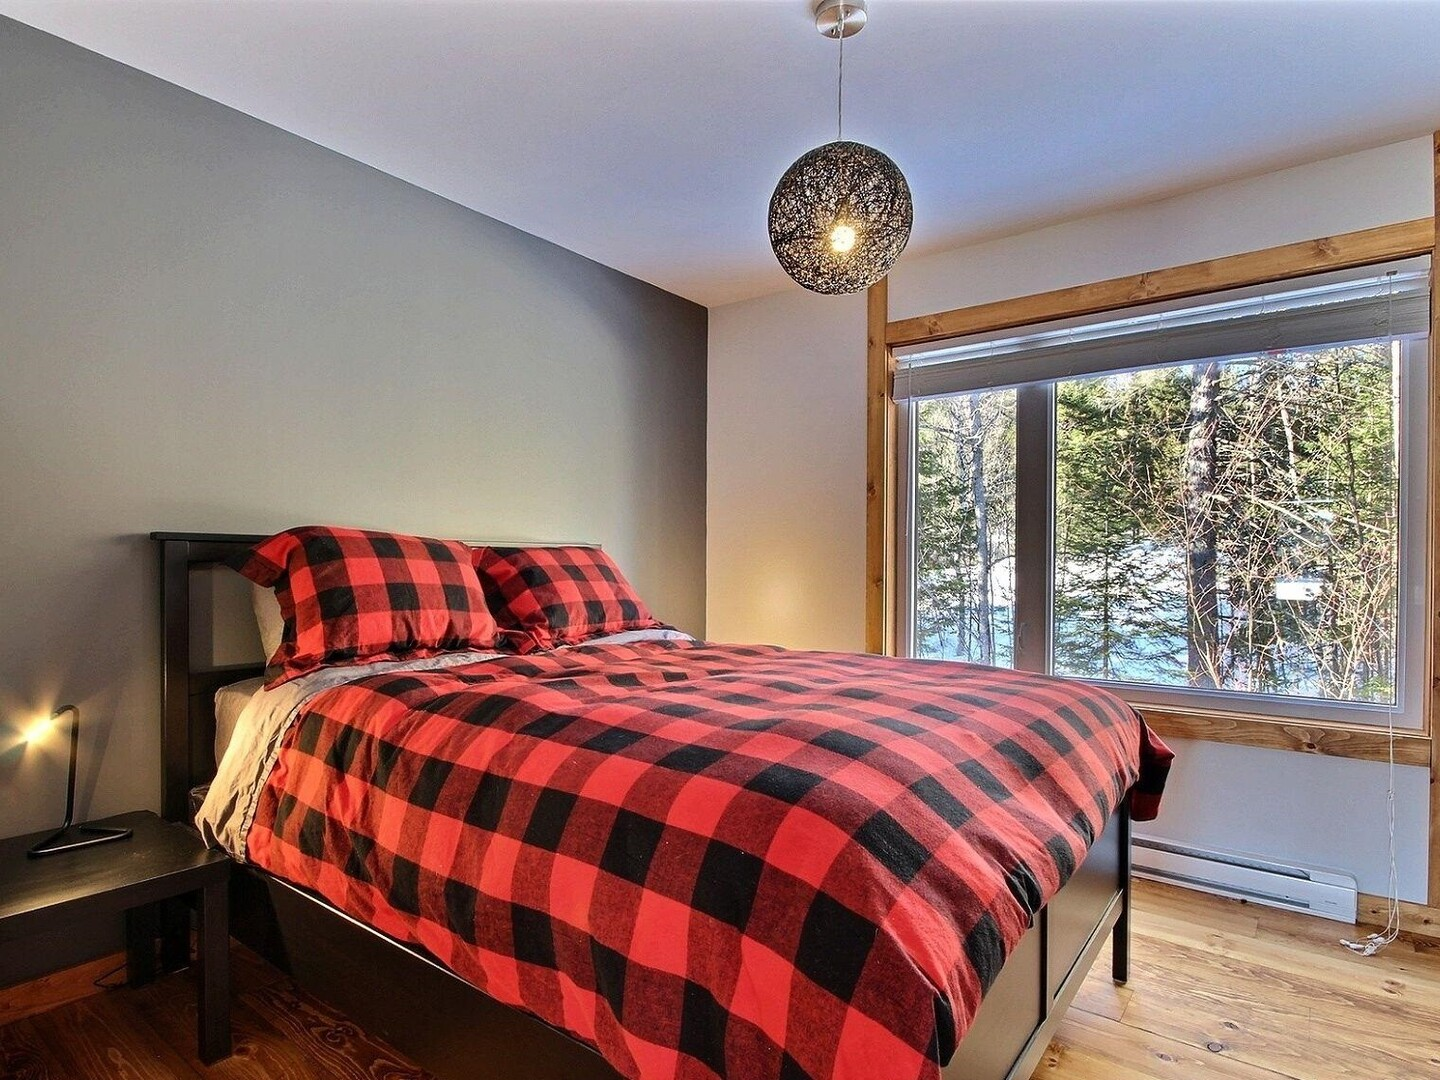 Location du chalet le panache sainte marguerite du lac for Chambre de commerce laurentides